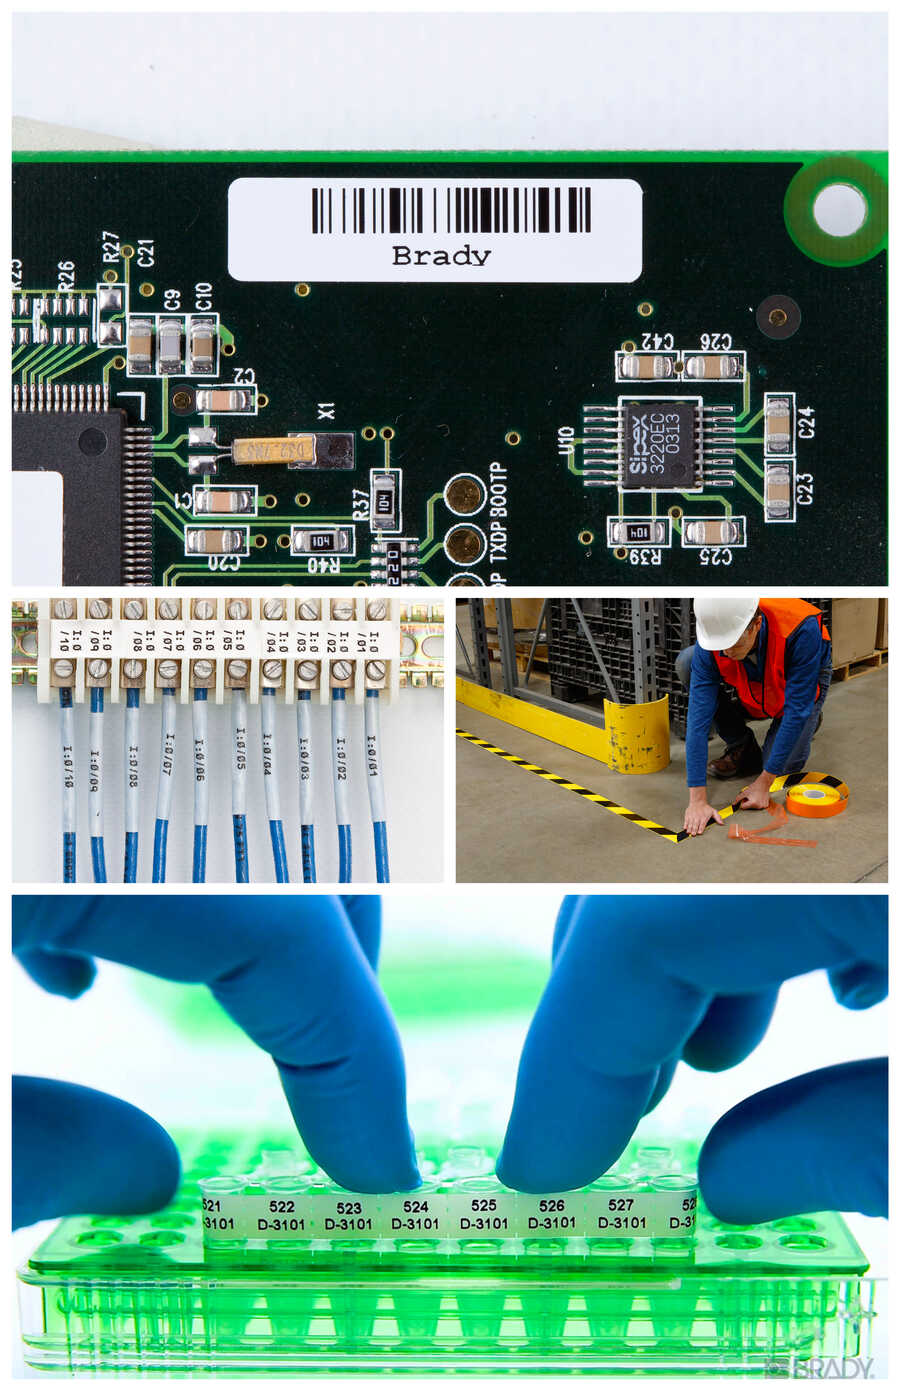 brady solutions floor marking labels for laboratory wire labels and component labeling